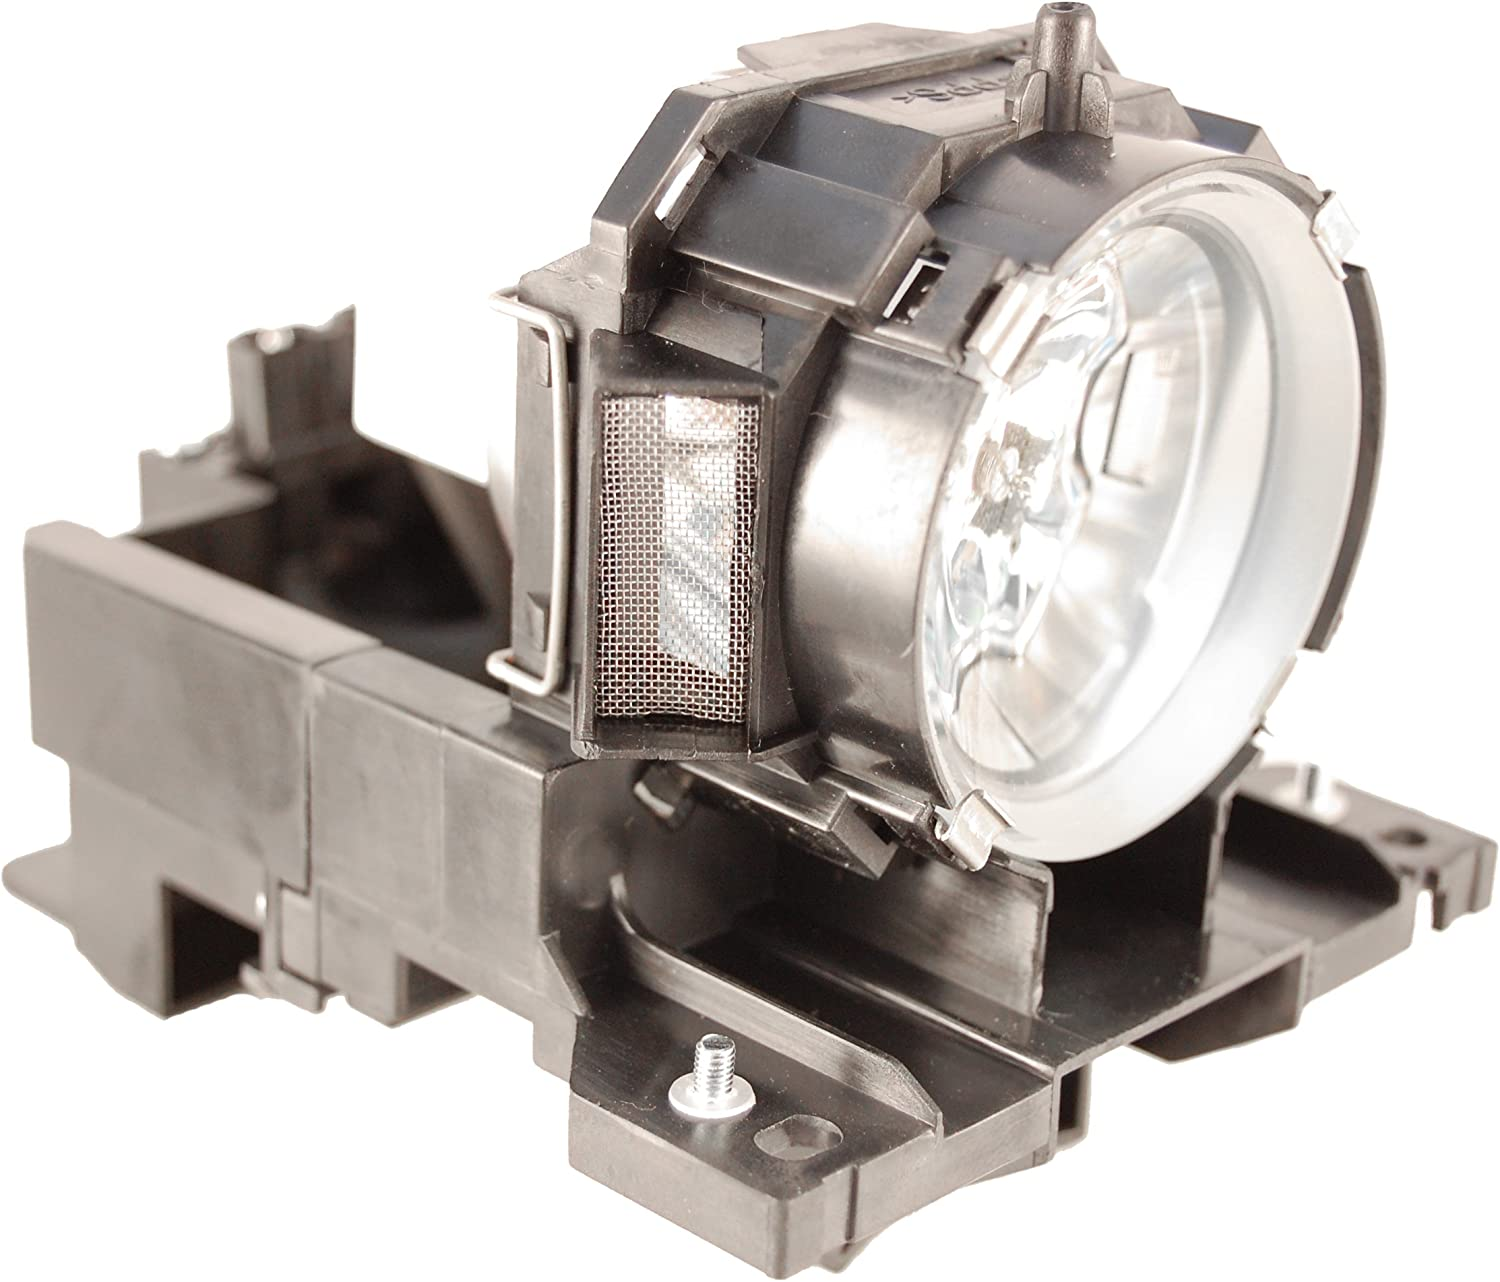 HITACHI DT00771 OEM Projector LAMP Equivalent with HOUSING